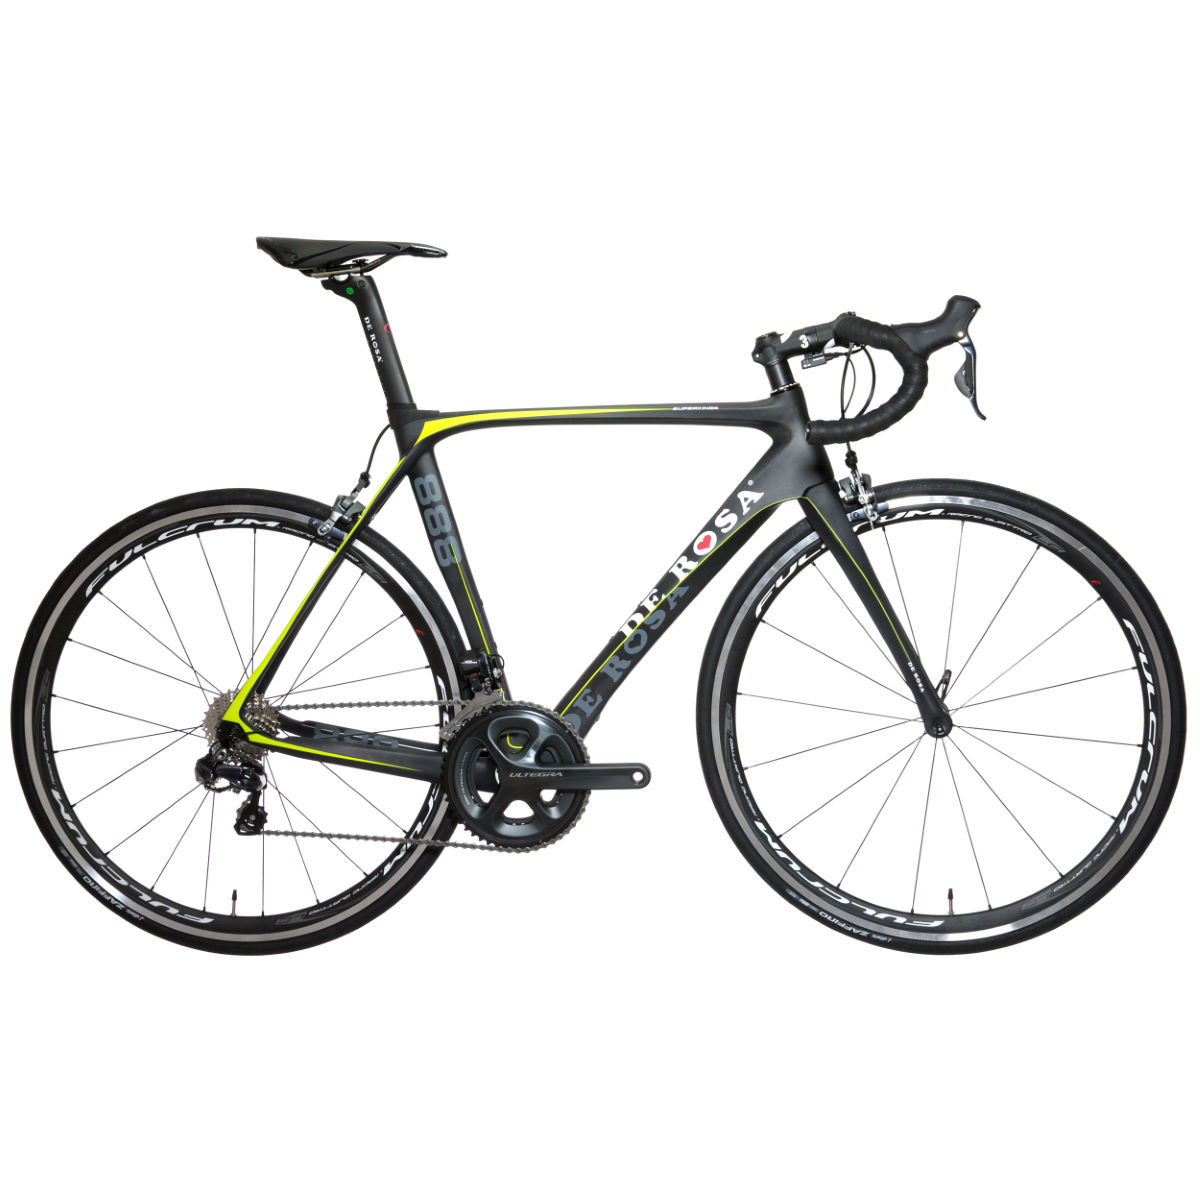 Vélo de route De Rosa SuperKing 888 (105, 2014) - 46cm Stock Bike Noir/Jaune Vélos de route